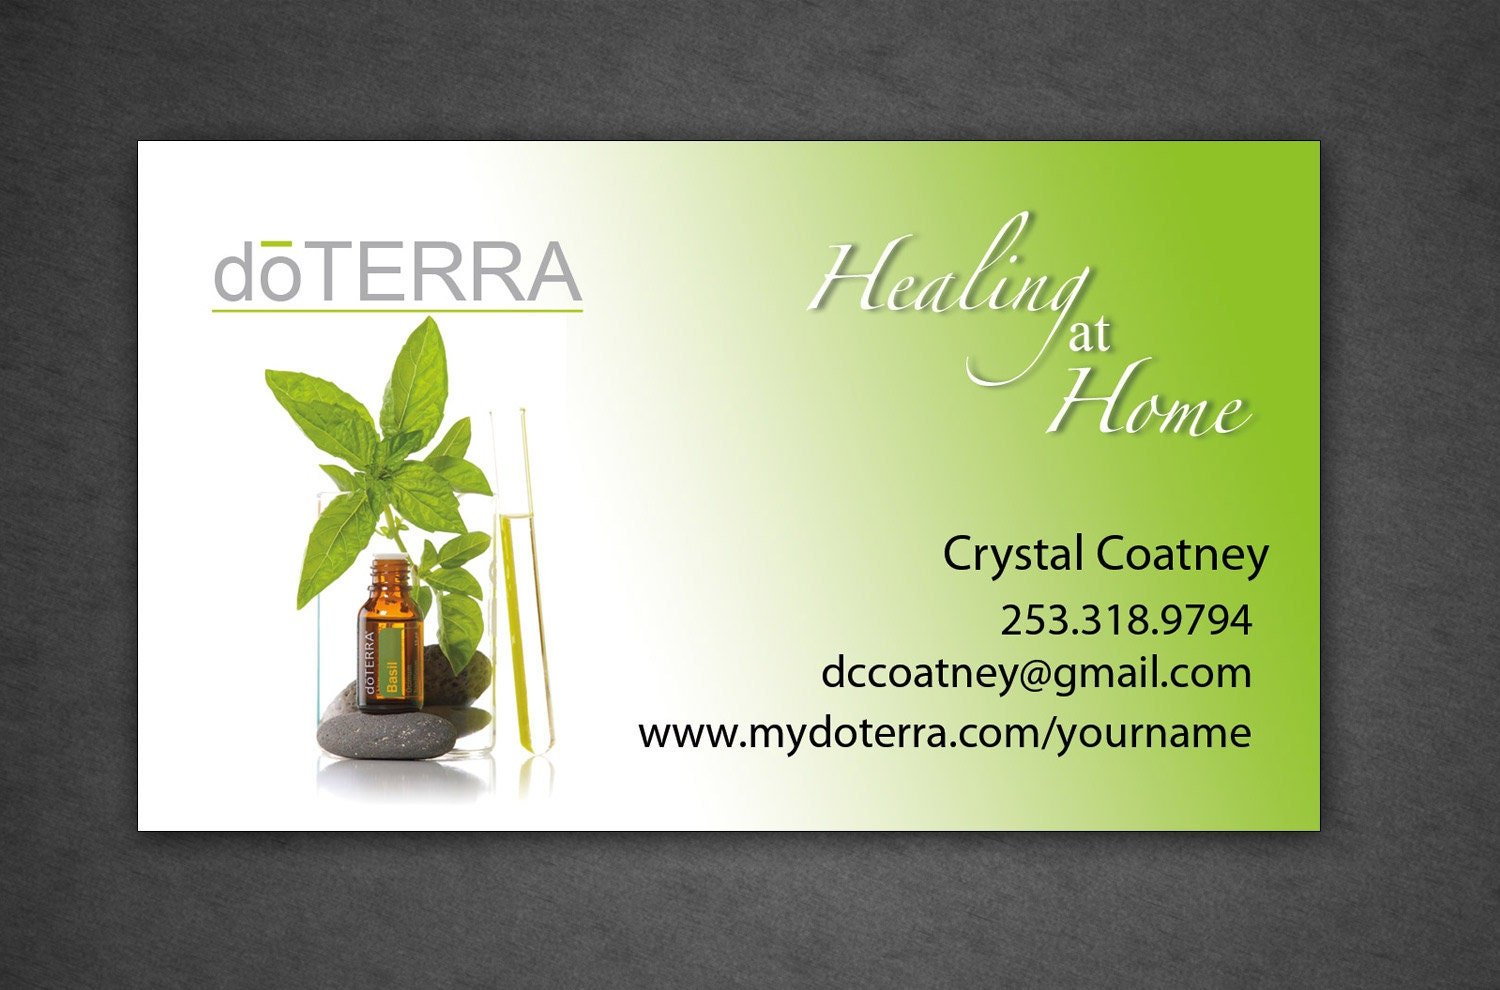 Printed doTerra Business card Design Full Color by